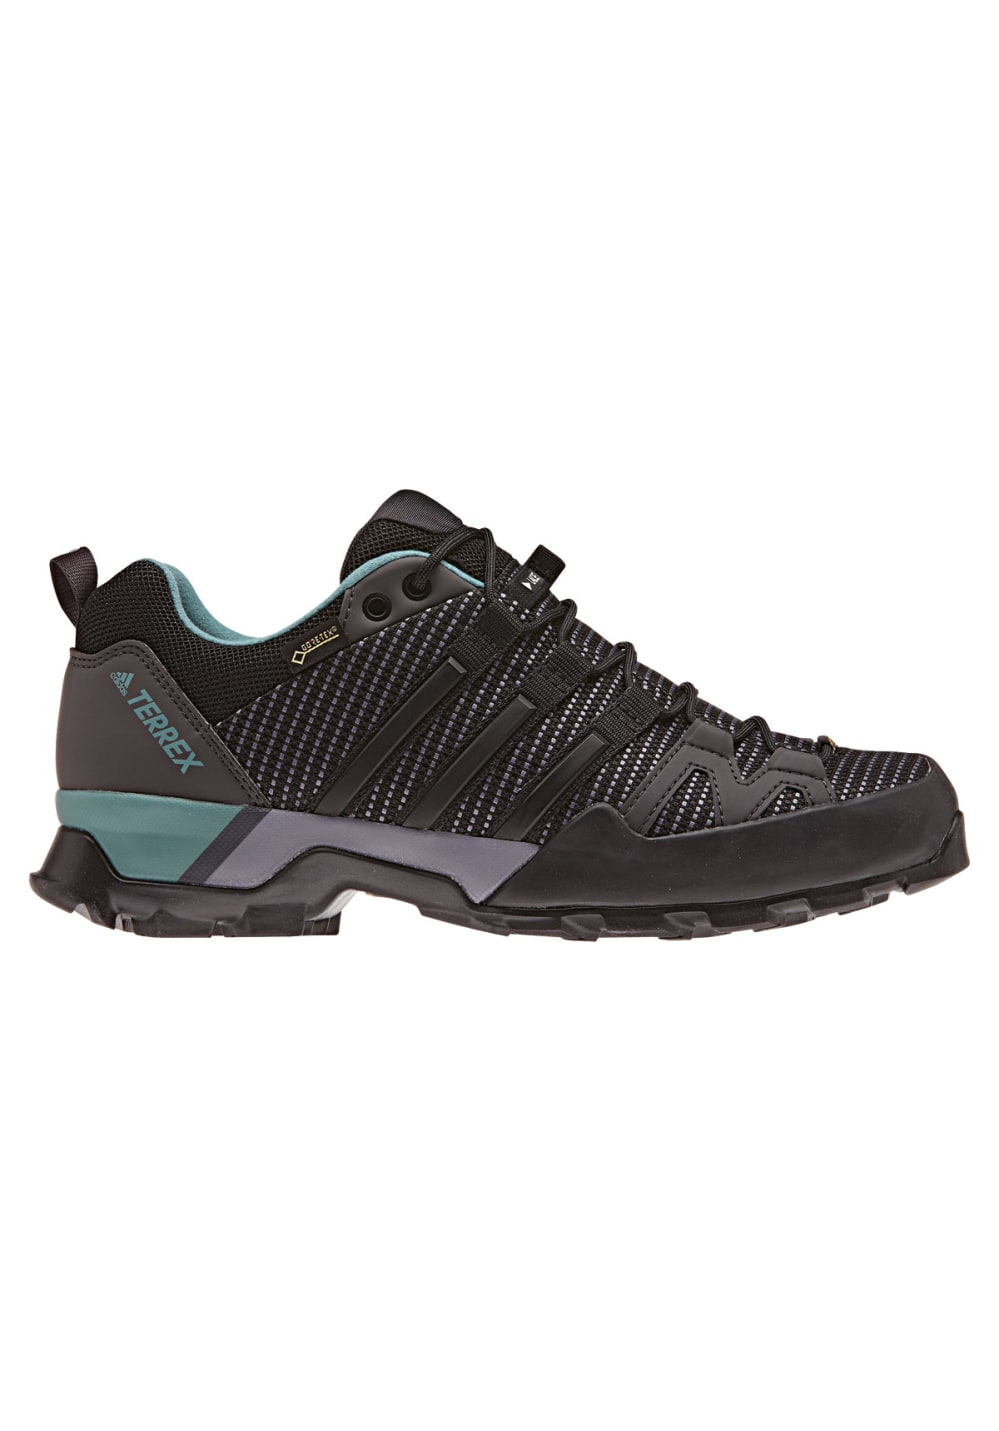 special section new lifestyle half price adidas Terrex Scope GTX - Outdoor shoes for Women - Black